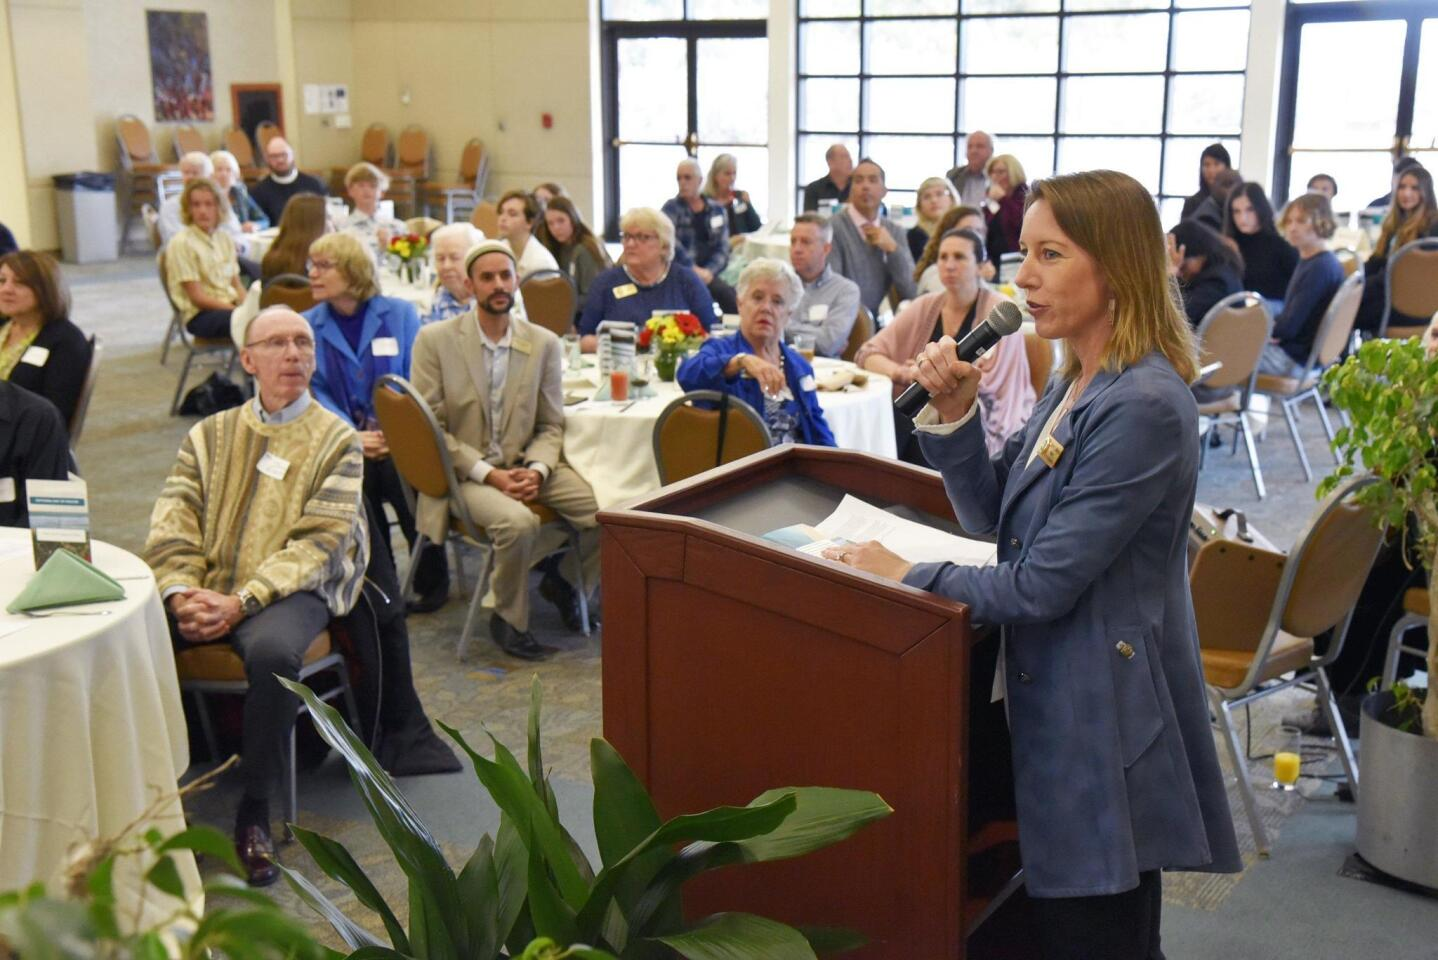 26th Annual Interfaith Community Prayer Breakfast